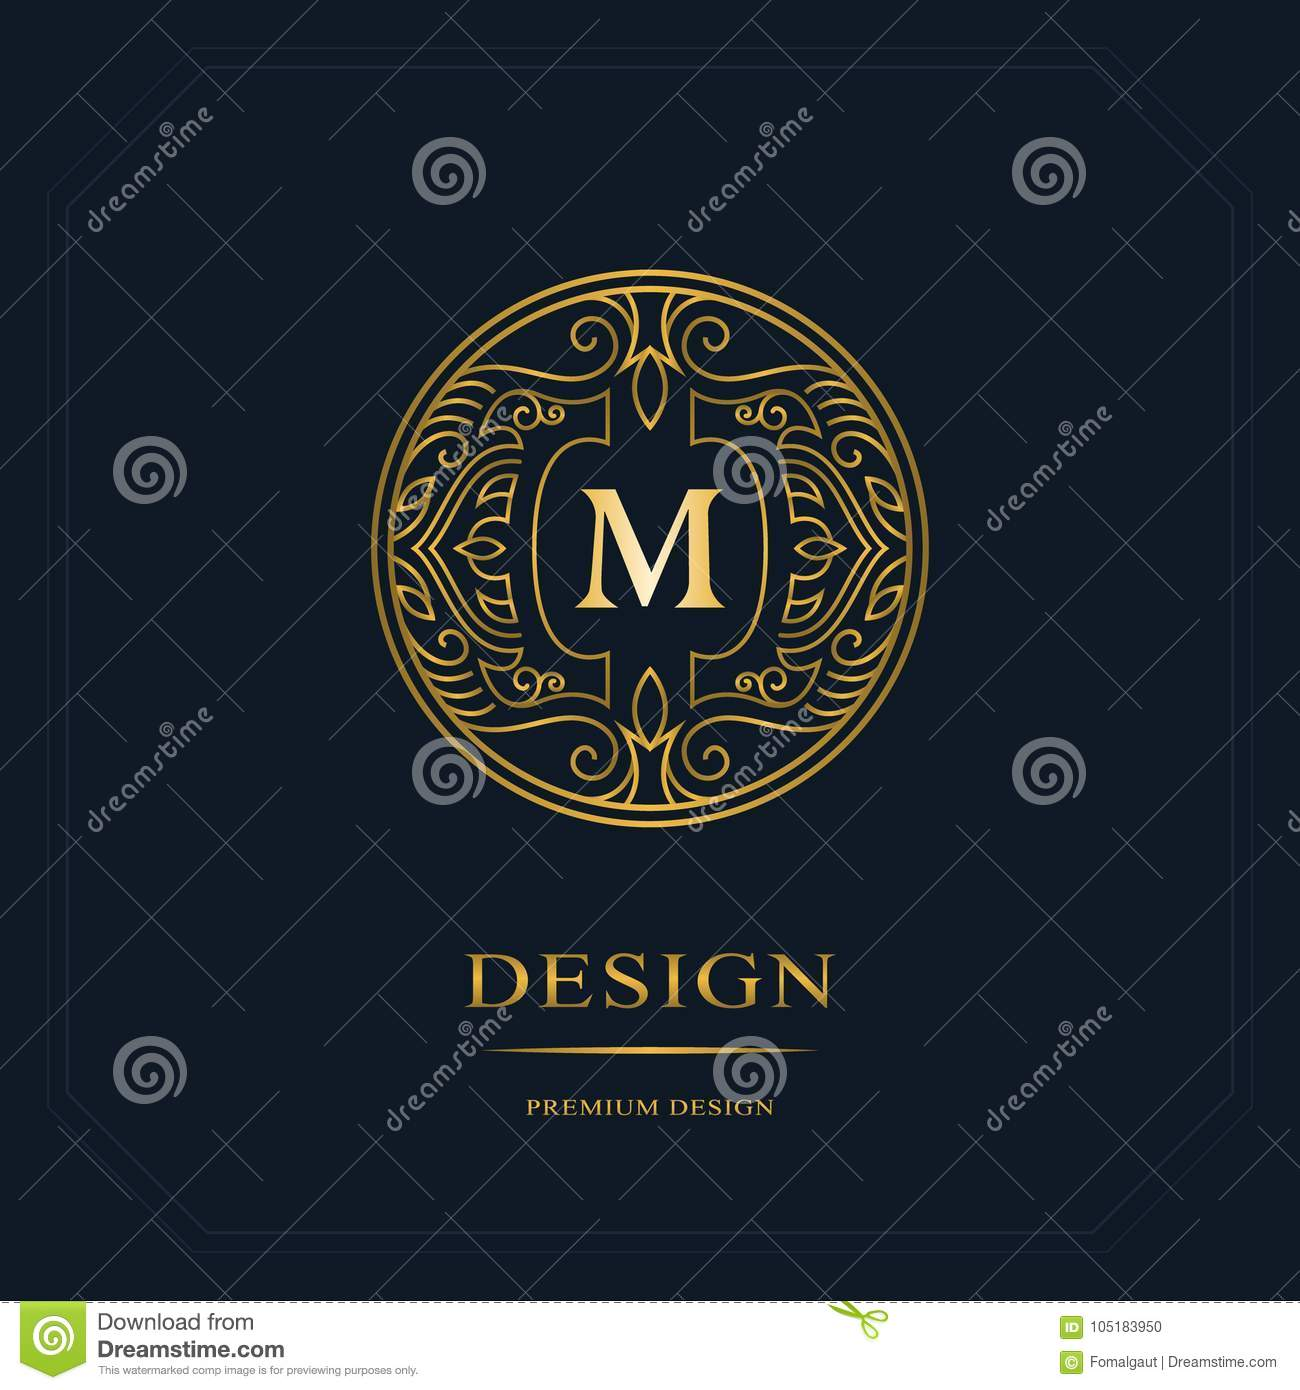 Gold line graphics monogram elegant art logo design letter m elegant art logo design letter m graceful template business sign identity for restaurant royalty boutique cafe hotel heraldic jewelry fashion wajeb Gallery